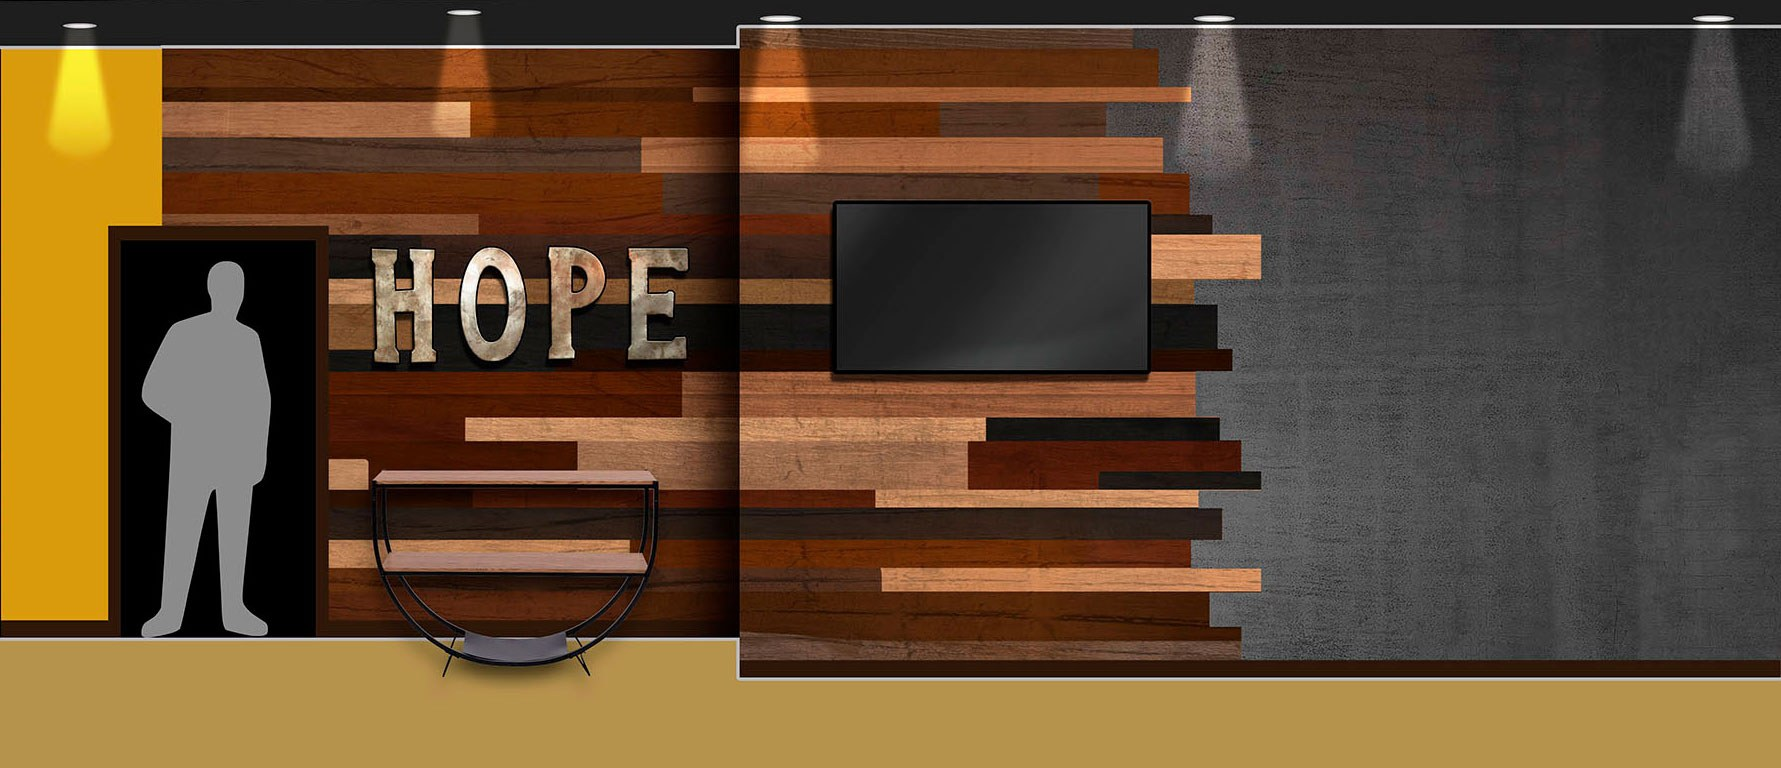 Modern Word and Mix-Matched Wood Planks Concept Wall Art